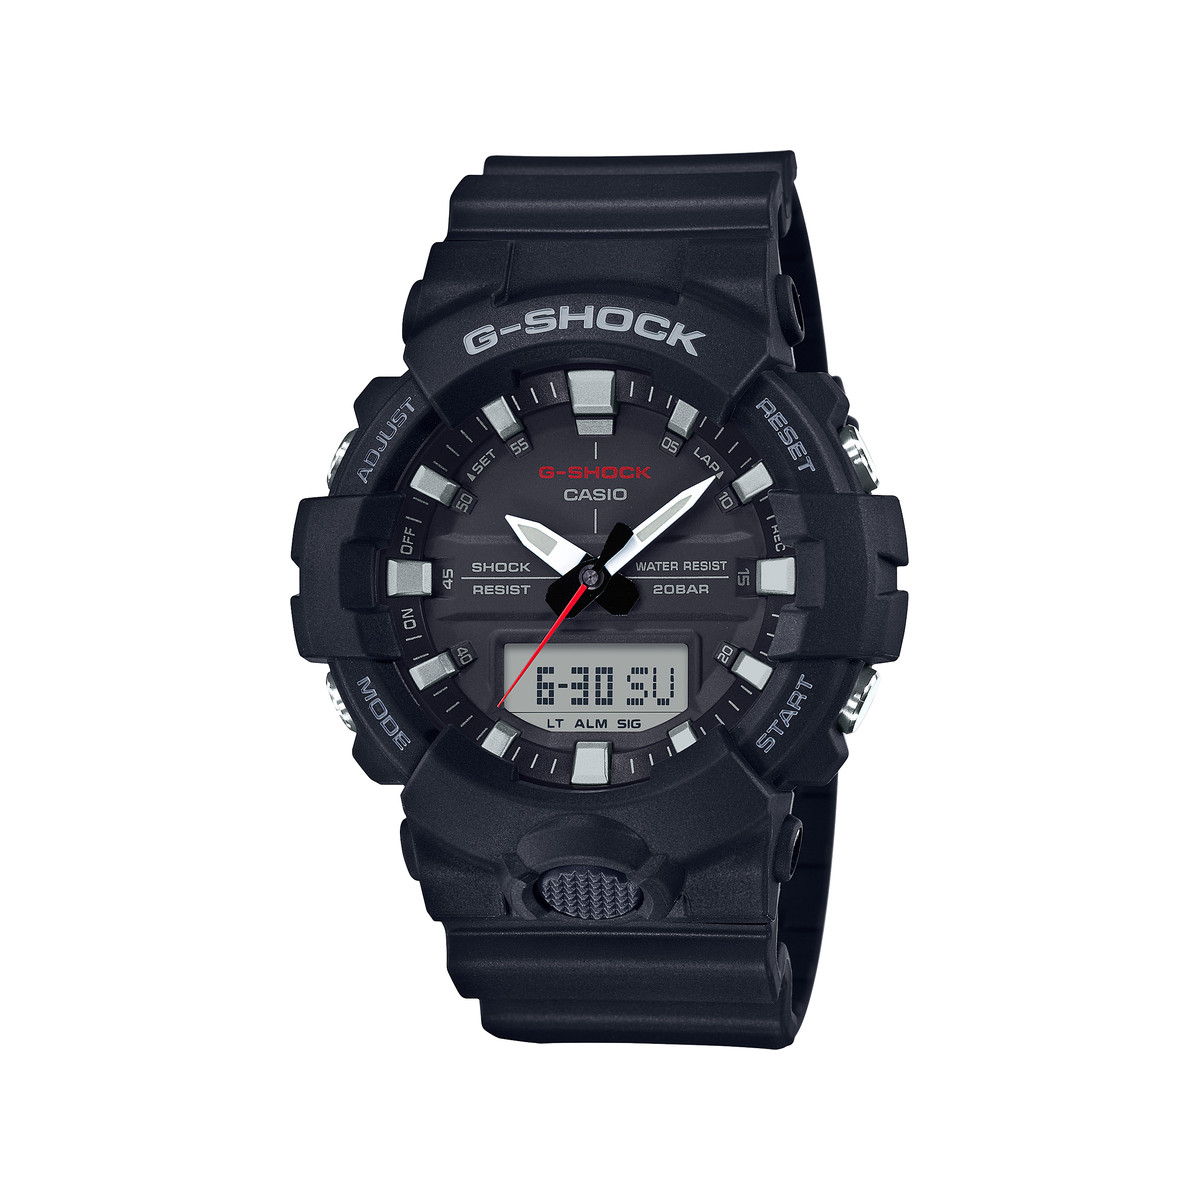 montre casio g shock homme r sine noire homme mod le ga 800 1aer maty. Black Bedroom Furniture Sets. Home Design Ideas